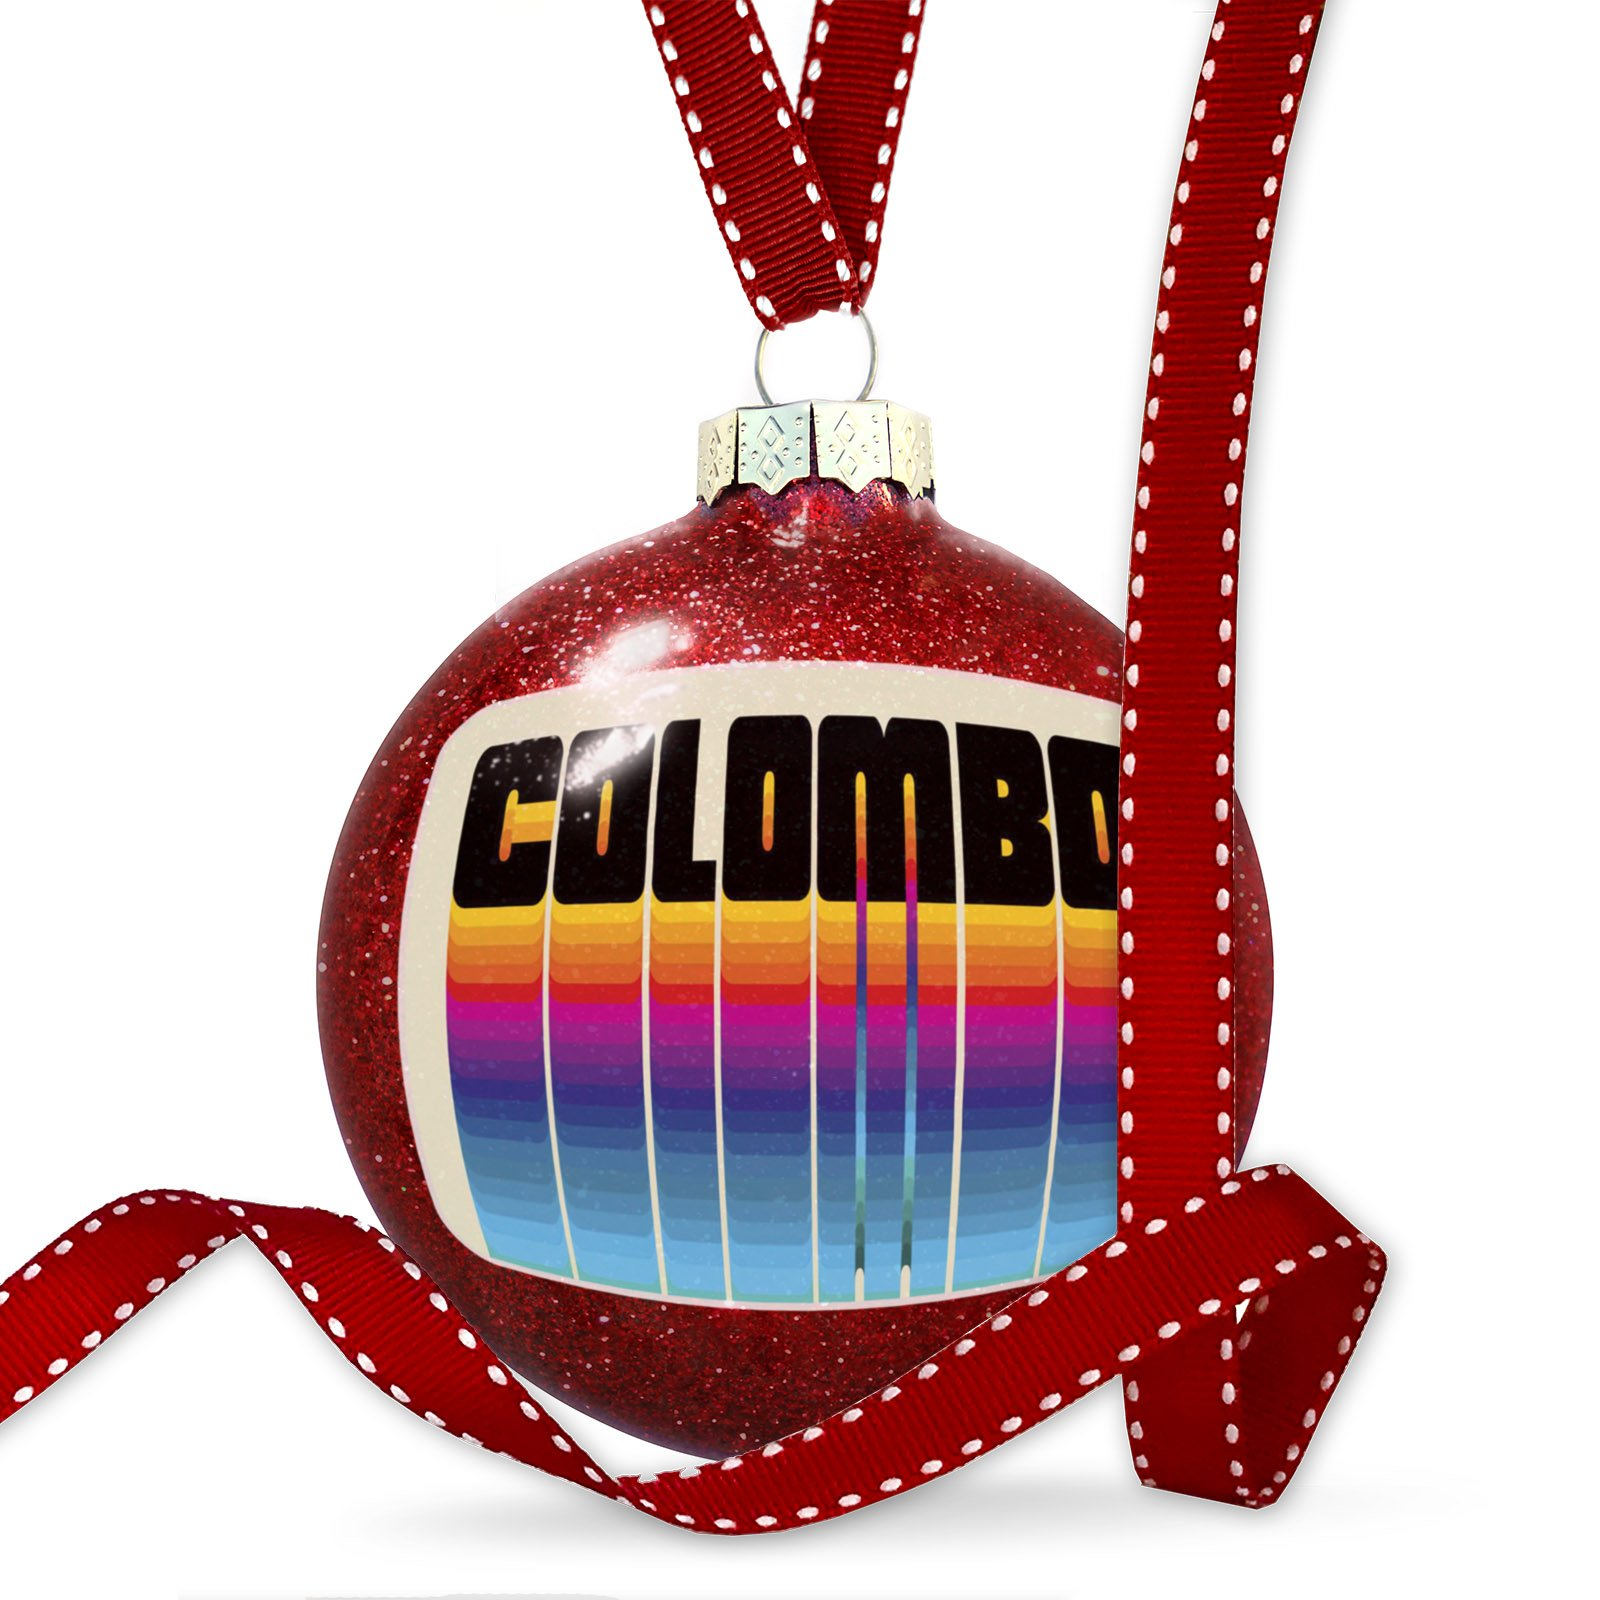 Christmas Decoration Retro Cites States Countries Colombo Ornament by NEONBLOND (Image #1)